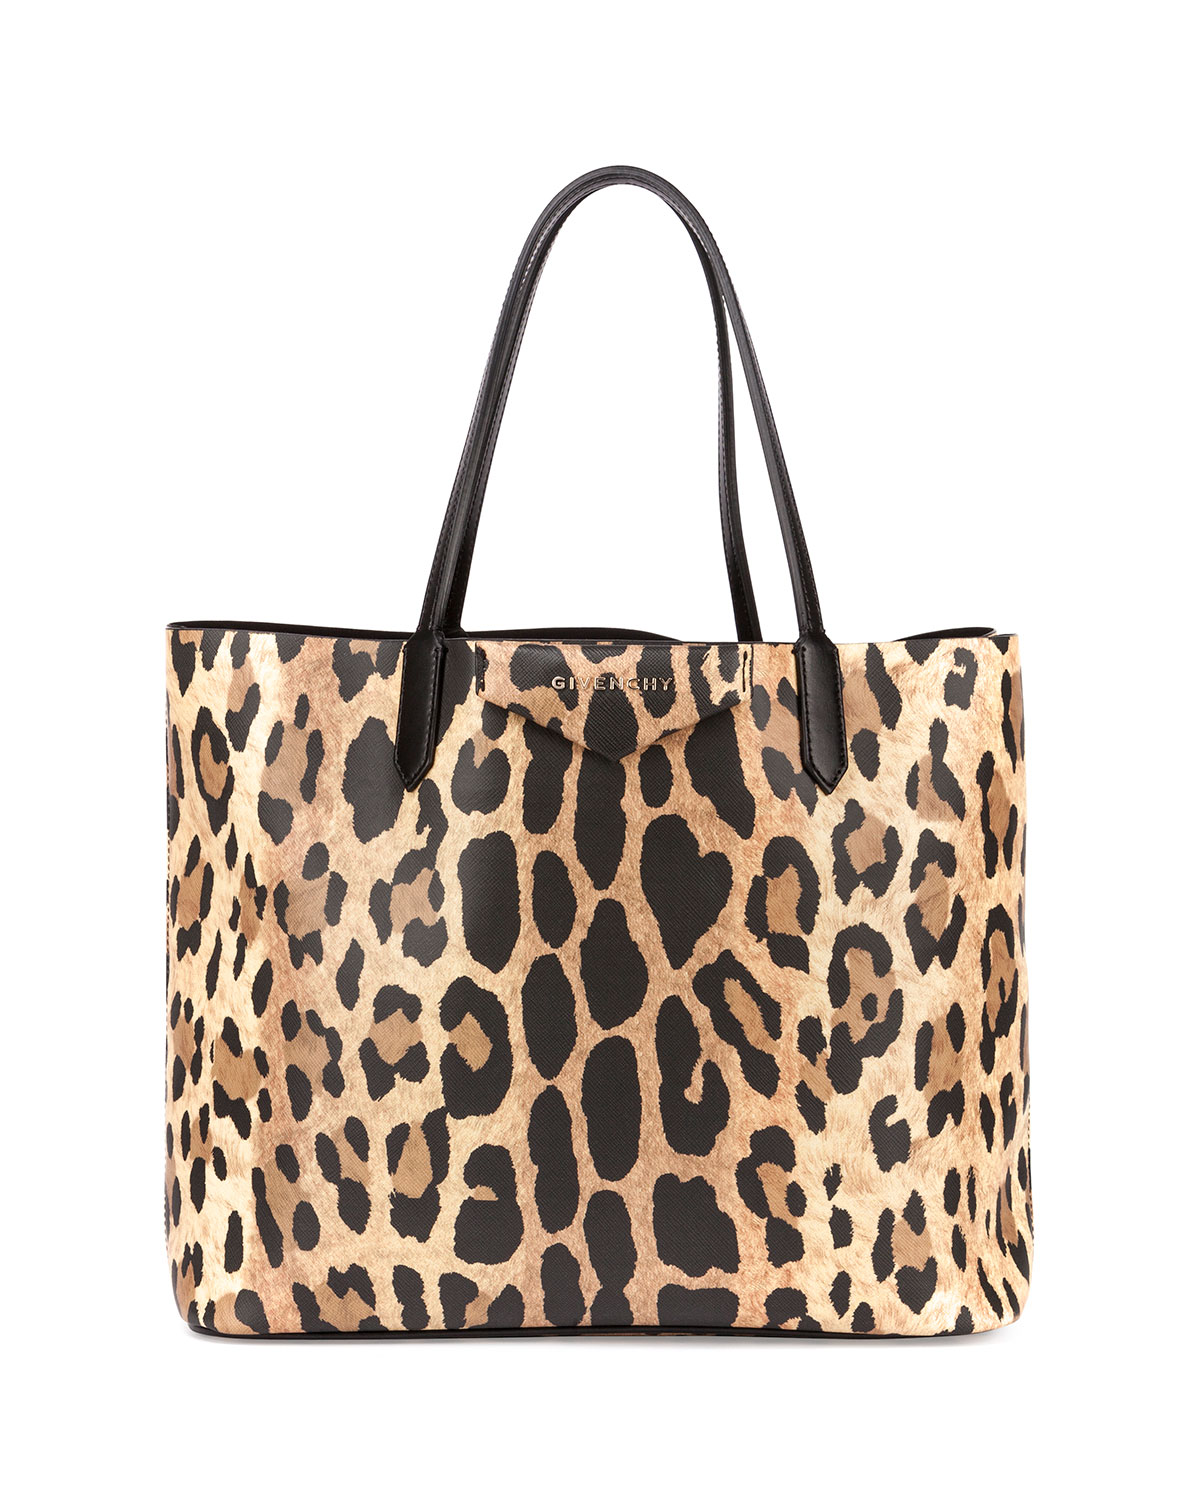 Givenchy Antigona Small Leather Ping Tote Animal Print Neiman 7 Piece Patent Leopard Handbags